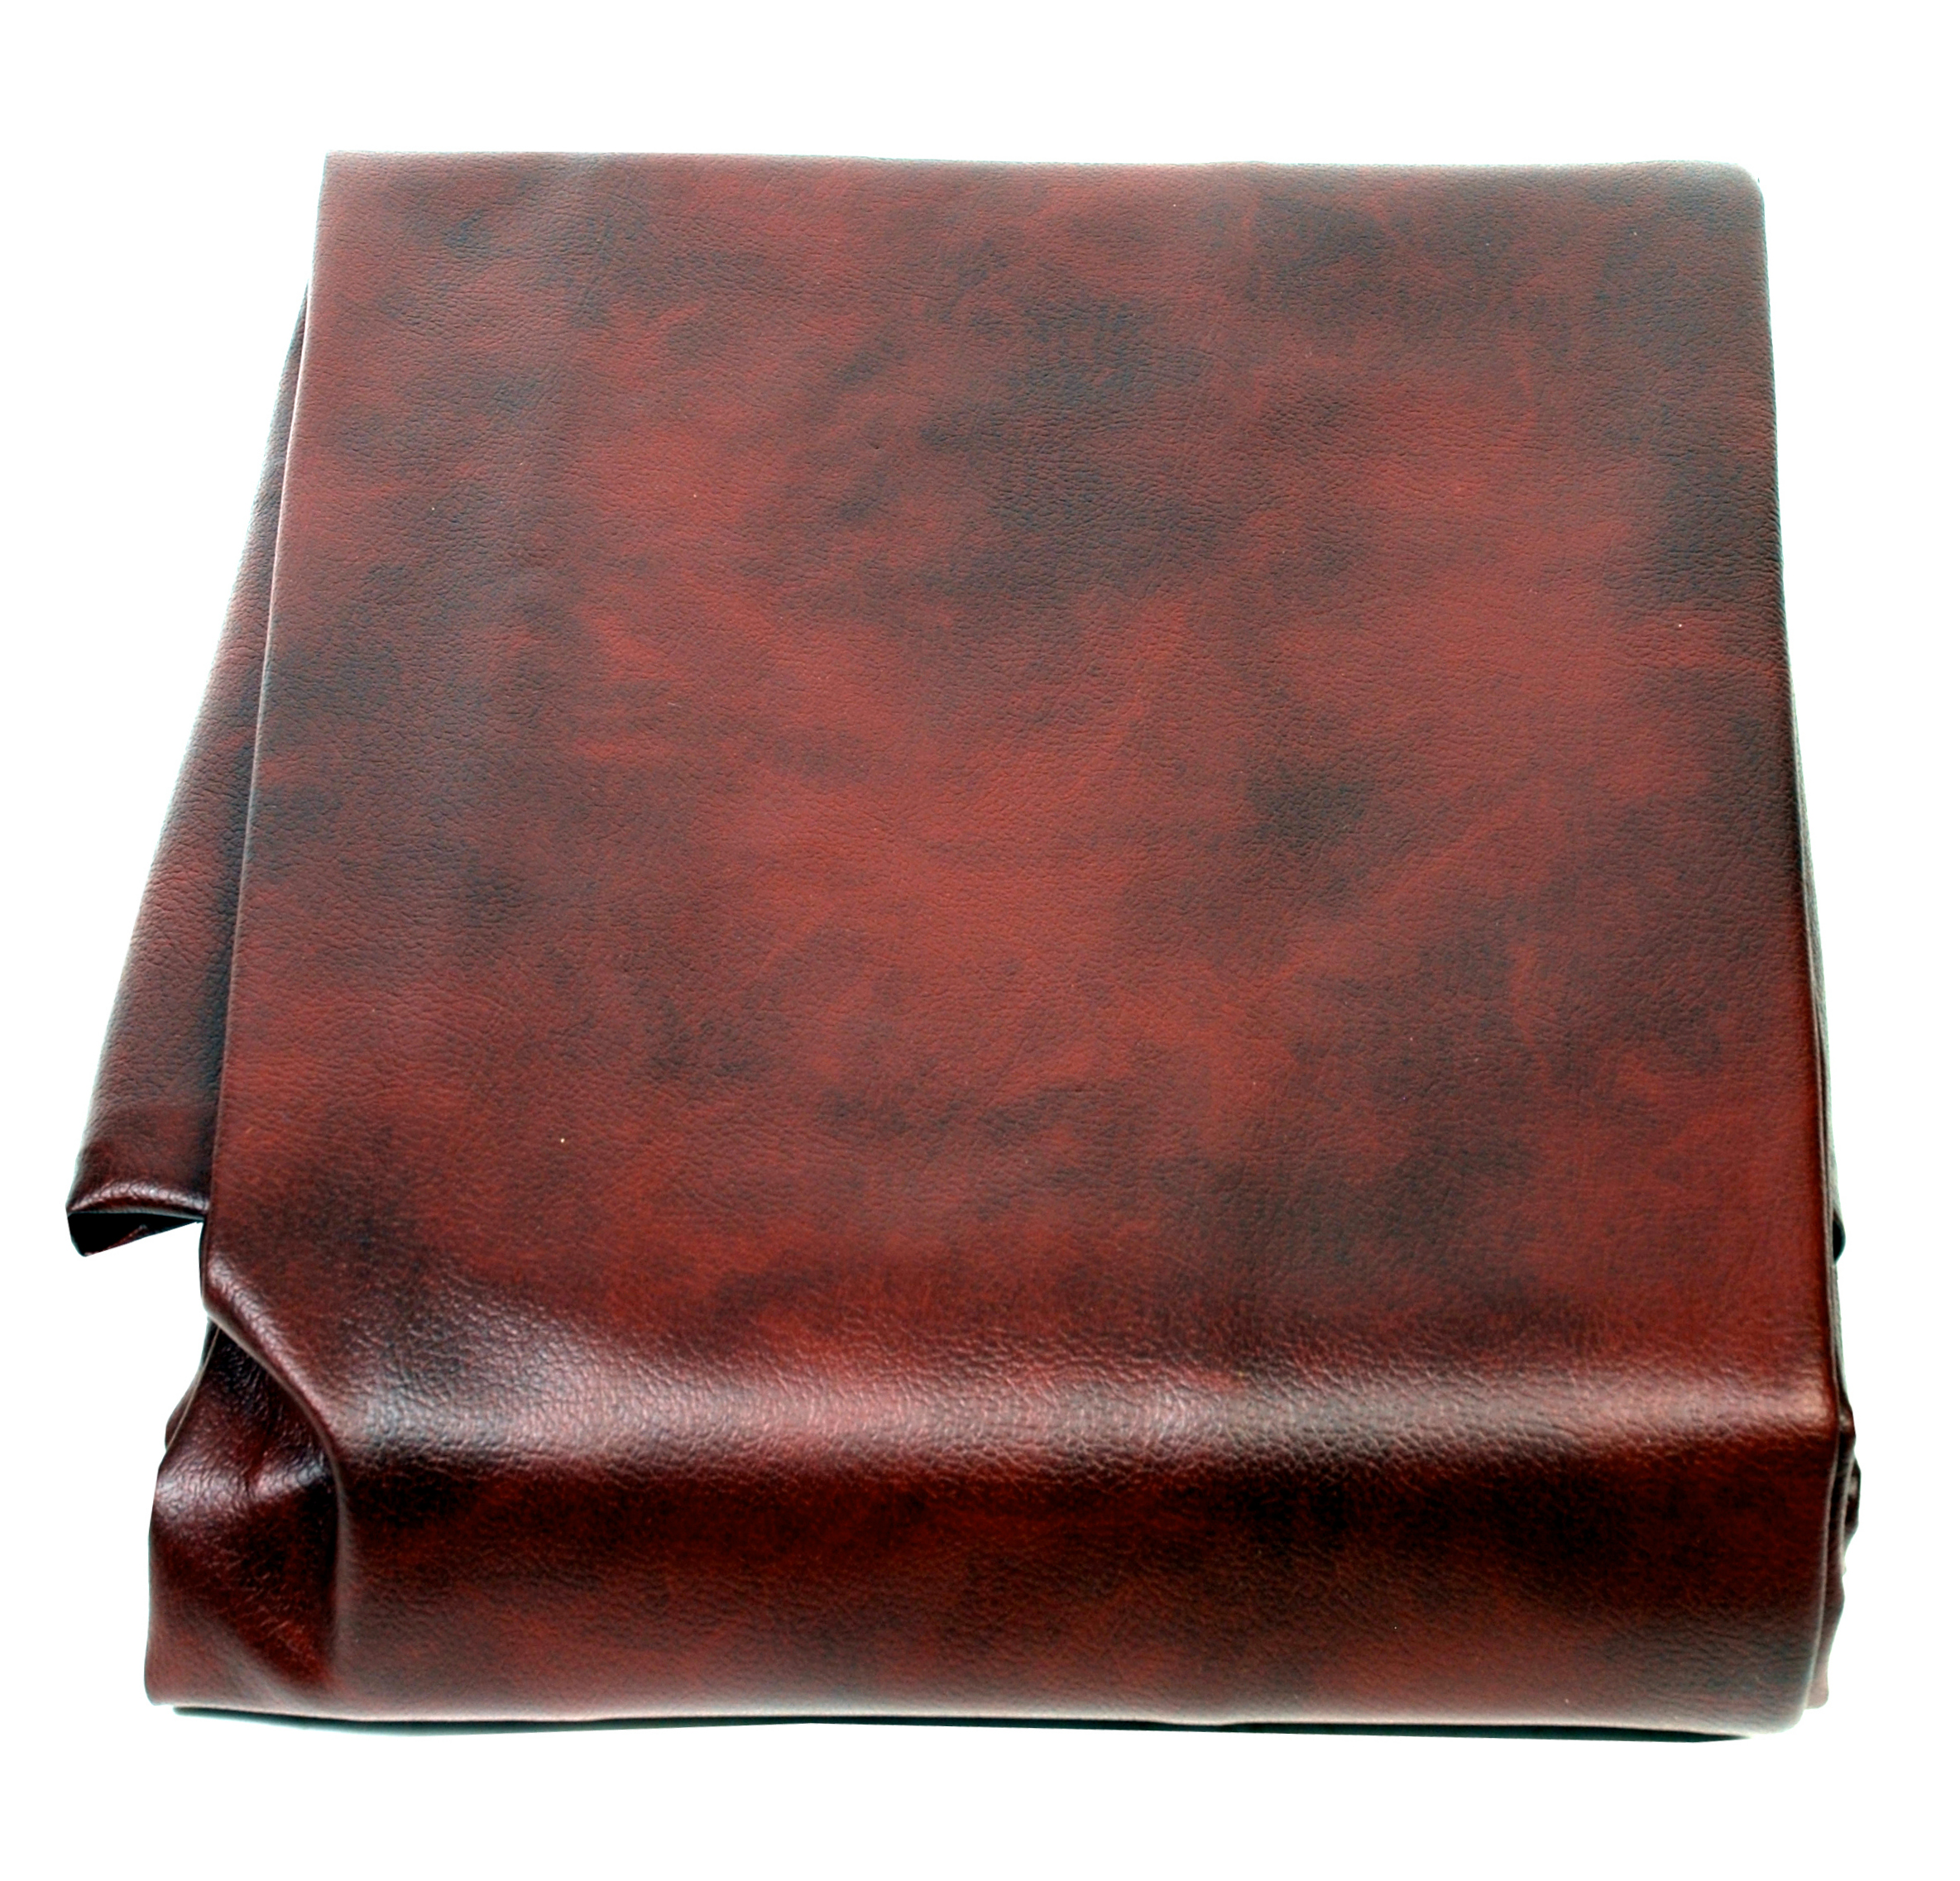 8u0027 Heavy Duty Pool Table Cover Burgundy Billiard